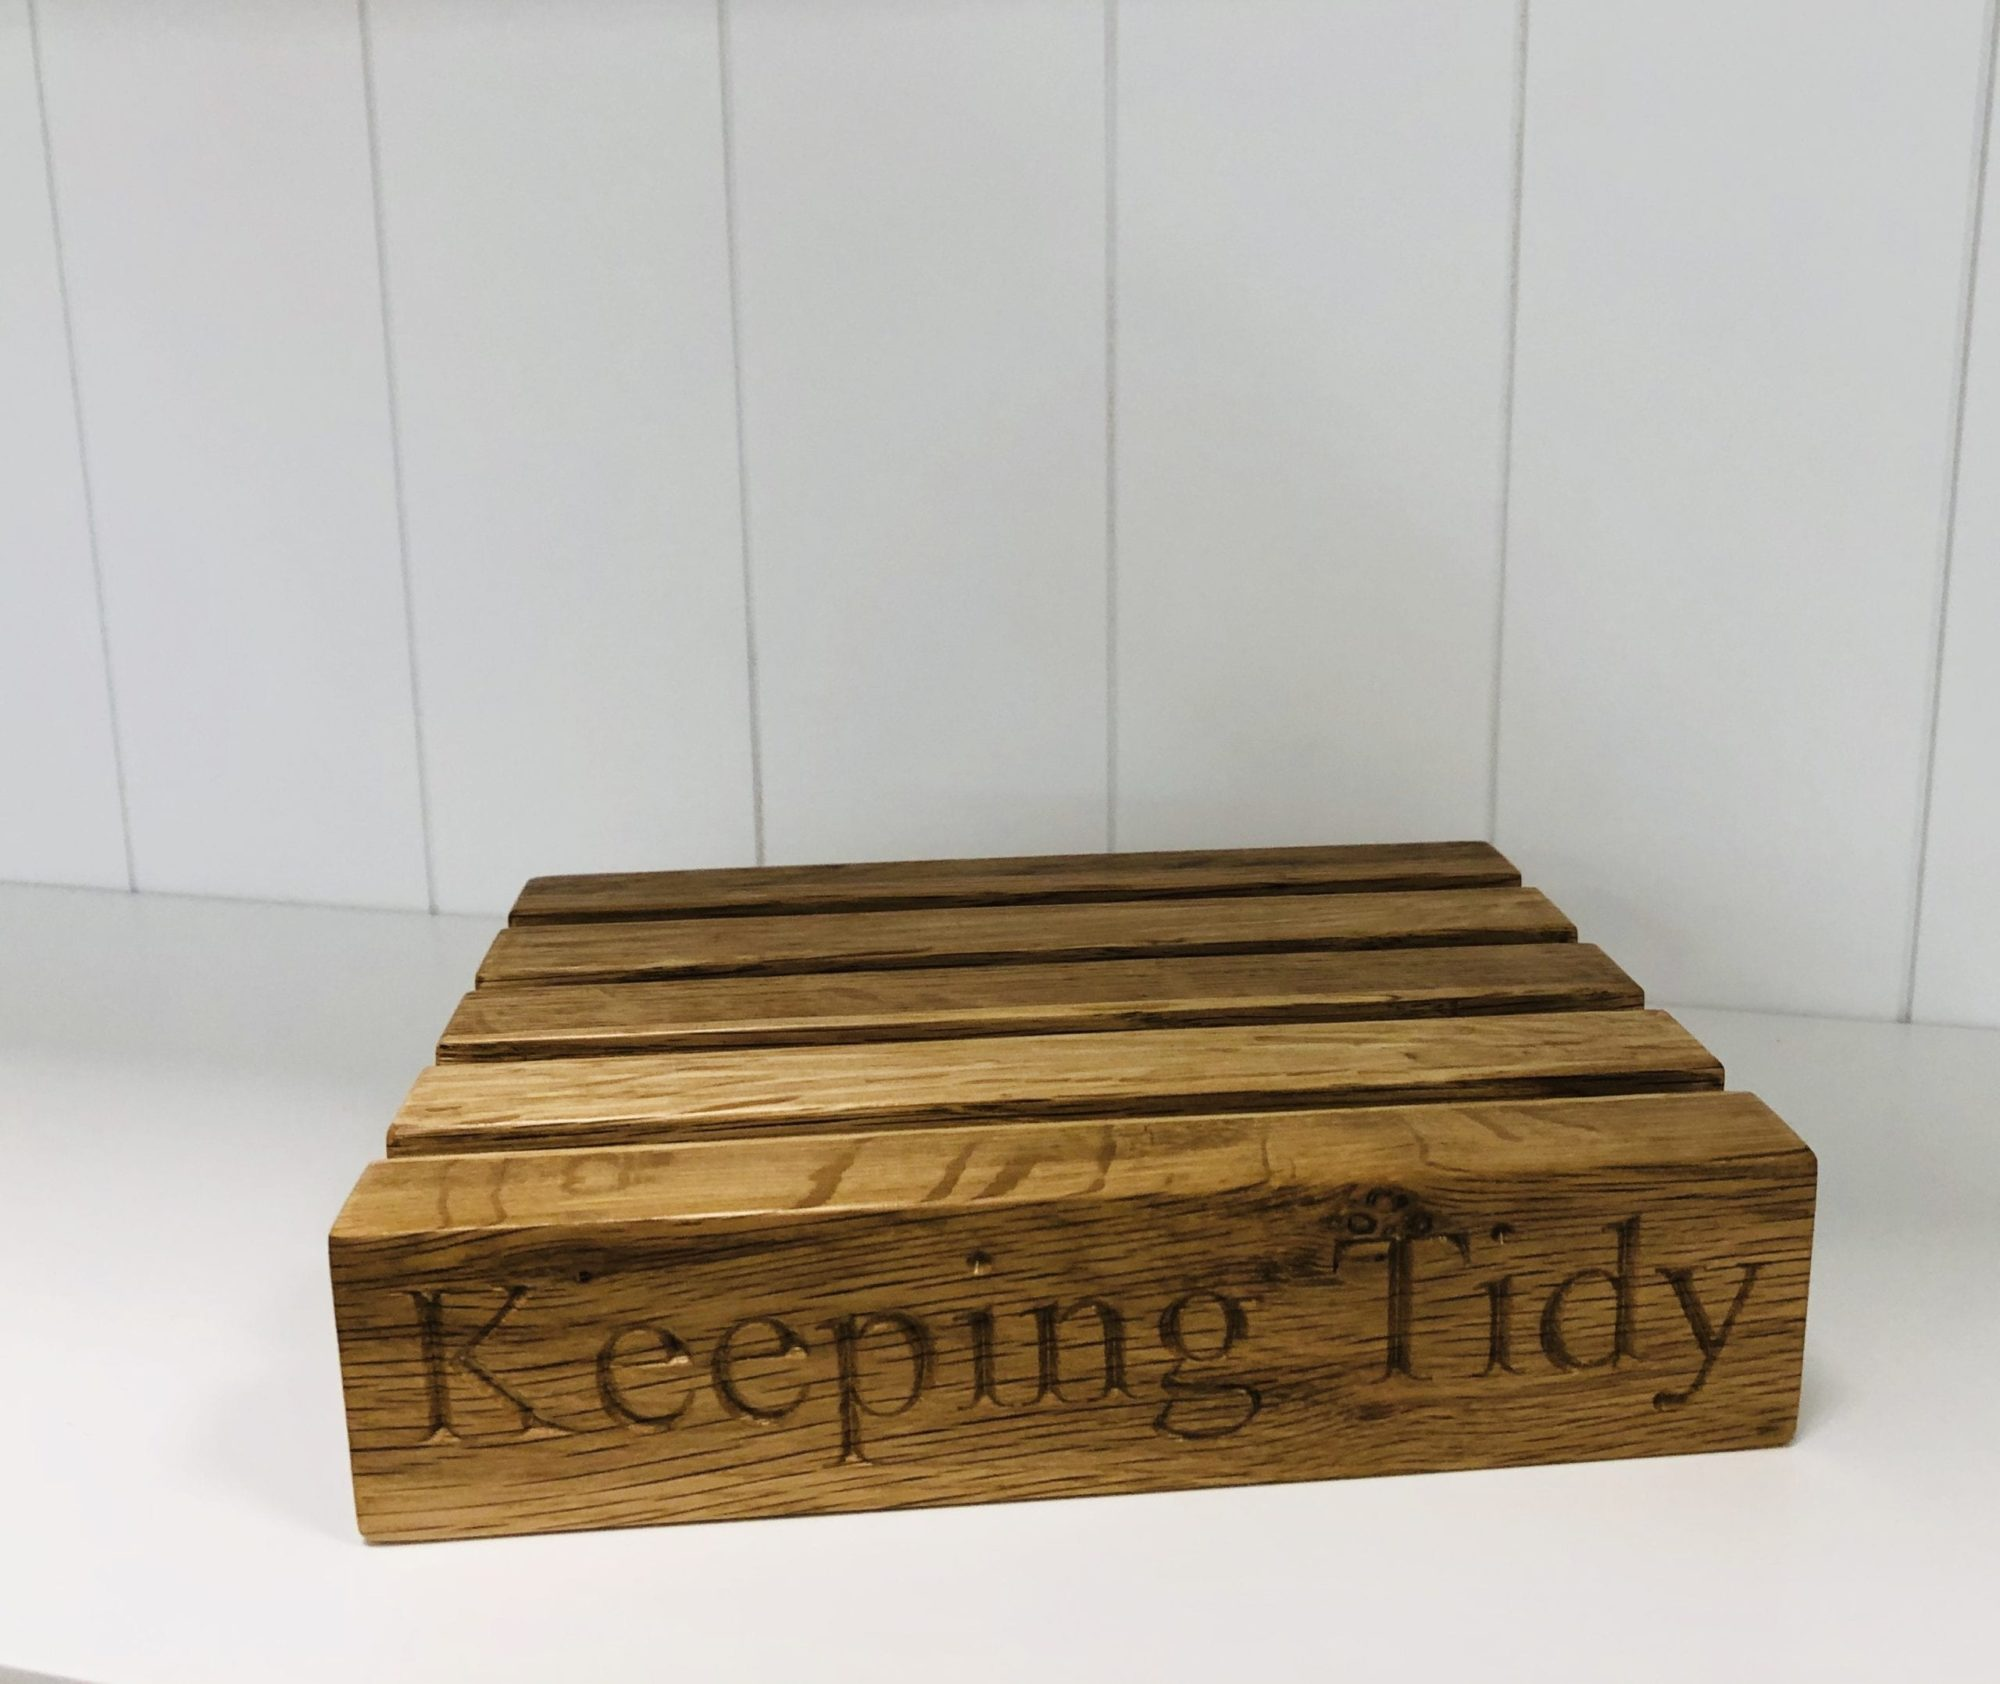 Keeping tidy letter rack 2